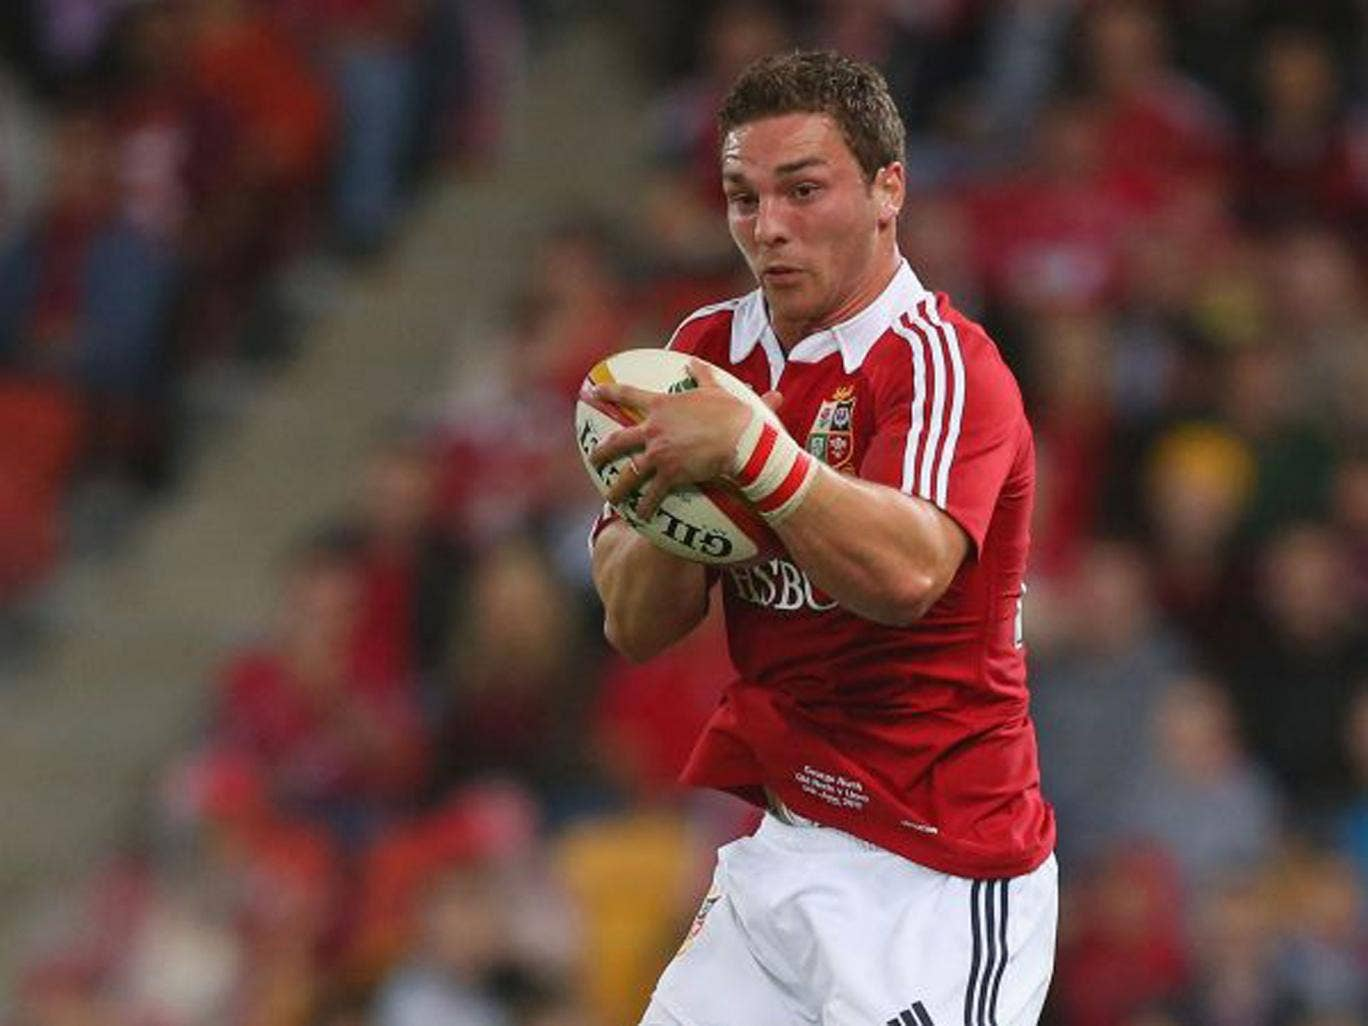 George North, the standout Lion, has a hamstring injury